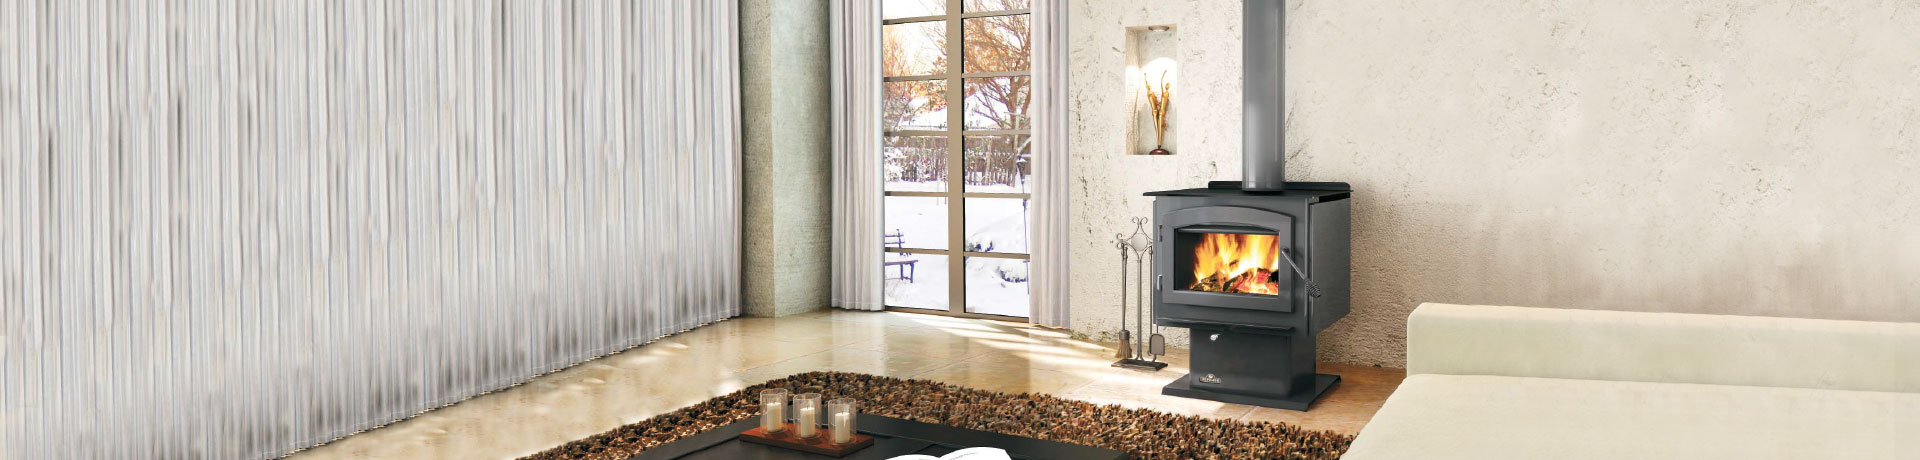 iBuyFireplaces.com - Buy Fireplace Equipment, Fireplace Accessories ...